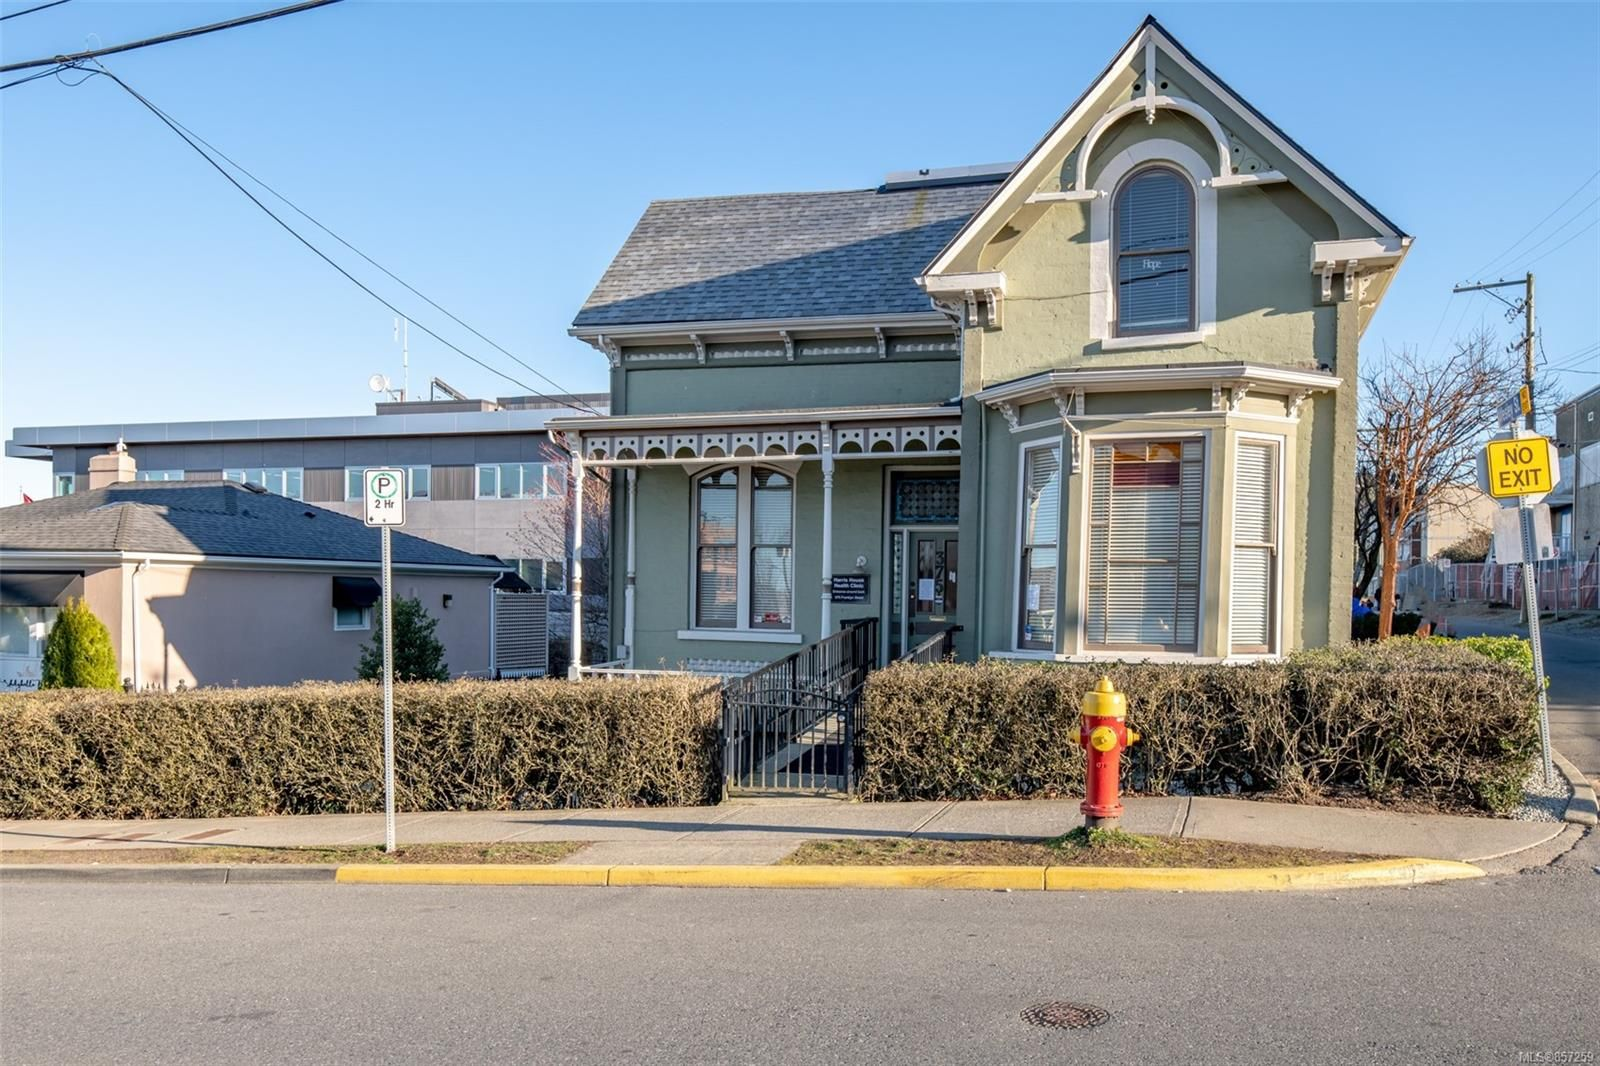 Main Photo: 375 Franklyn St in : Na Old City Other for sale (Nanaimo)  : MLS®# 857259